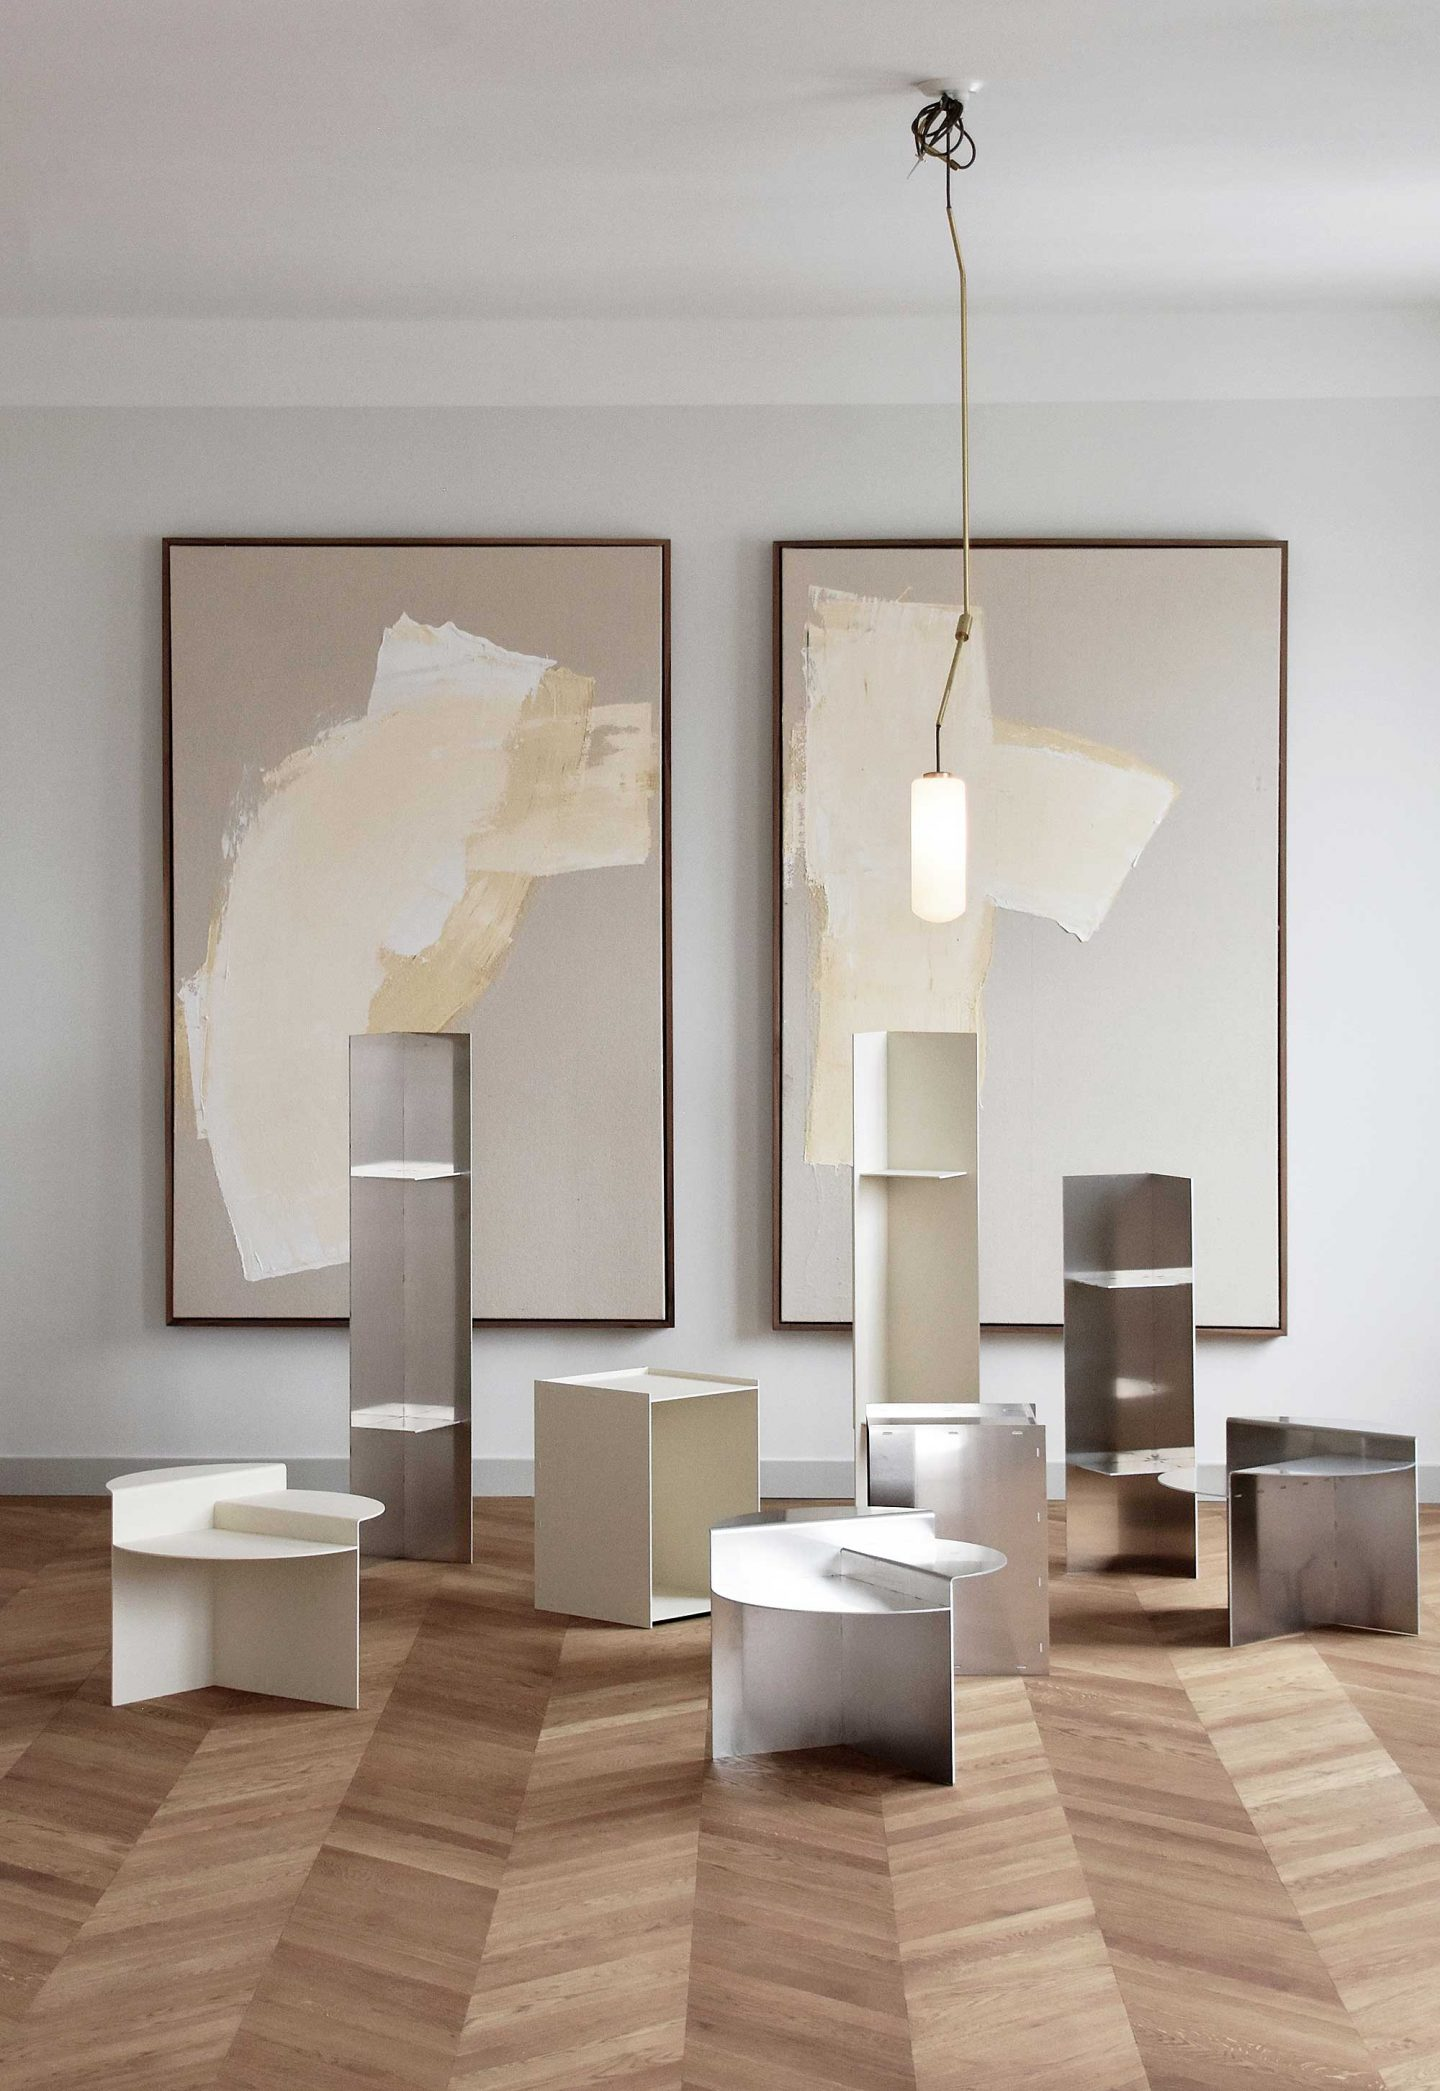 Highlights from Stockholm Design Week, Swedish design, Danish design, Andreas Martin-Löf, Frama